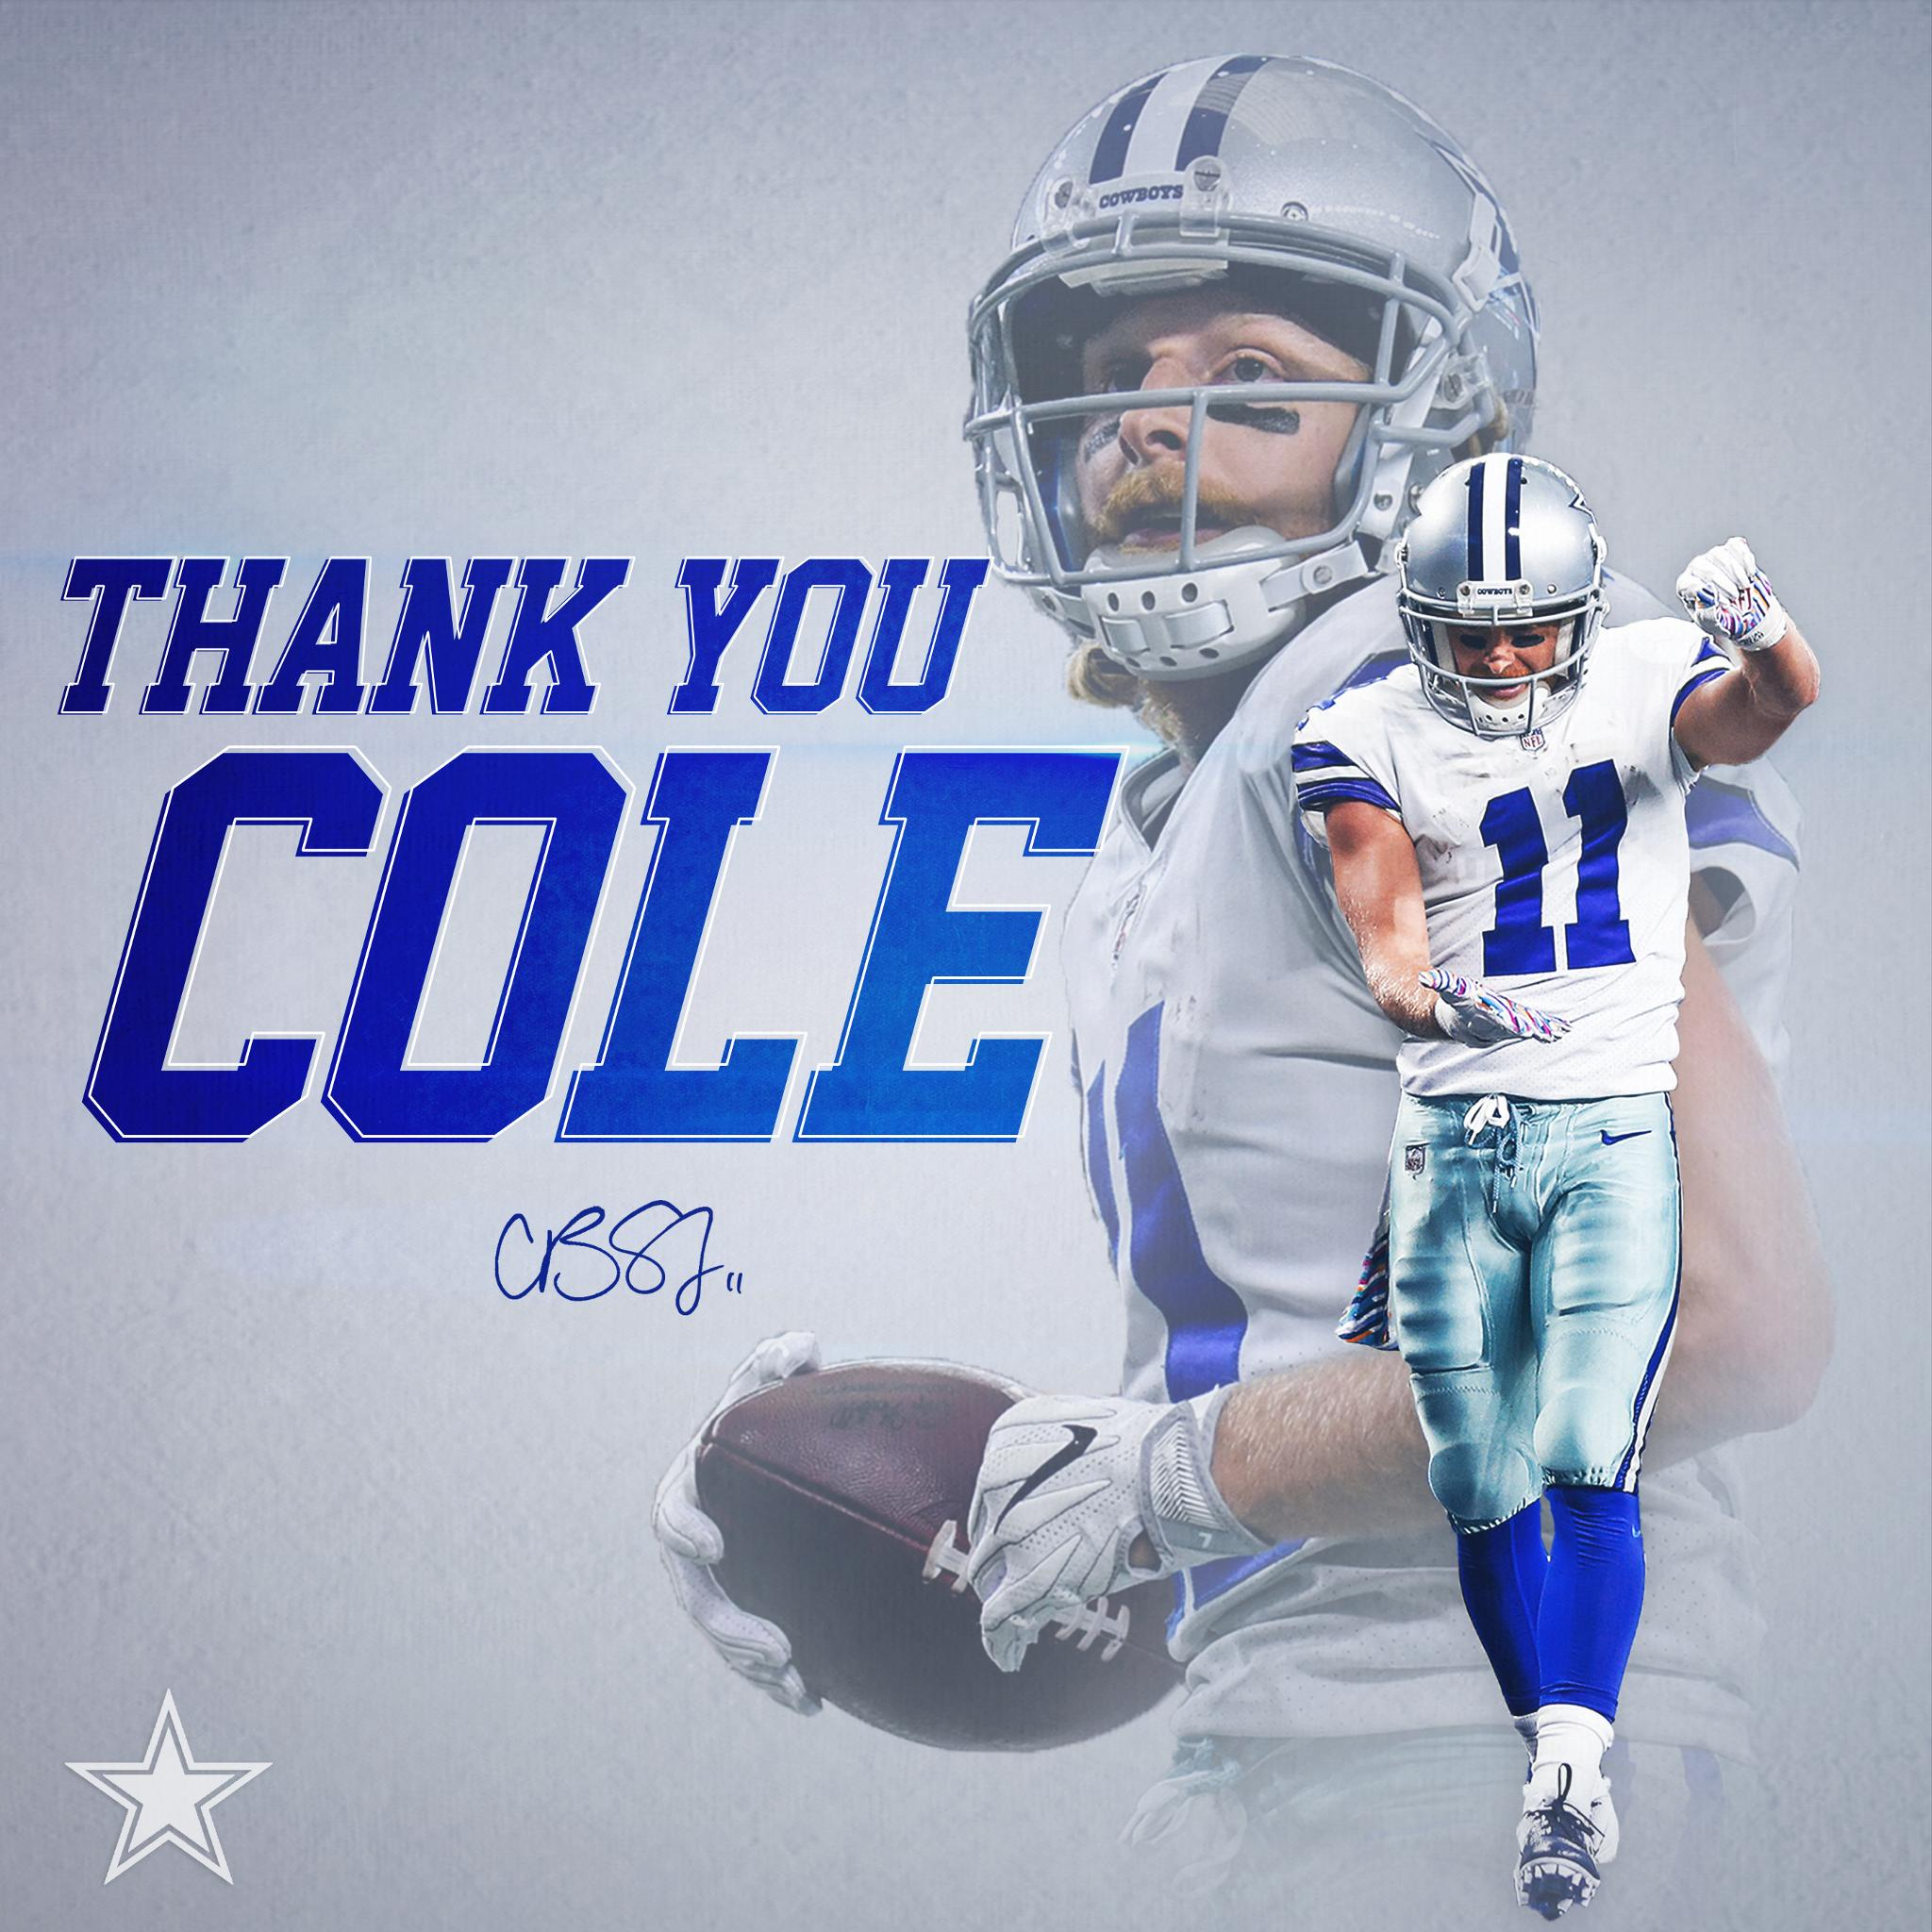 Thank you Cole. https://t.co/5jlj8VCd9x